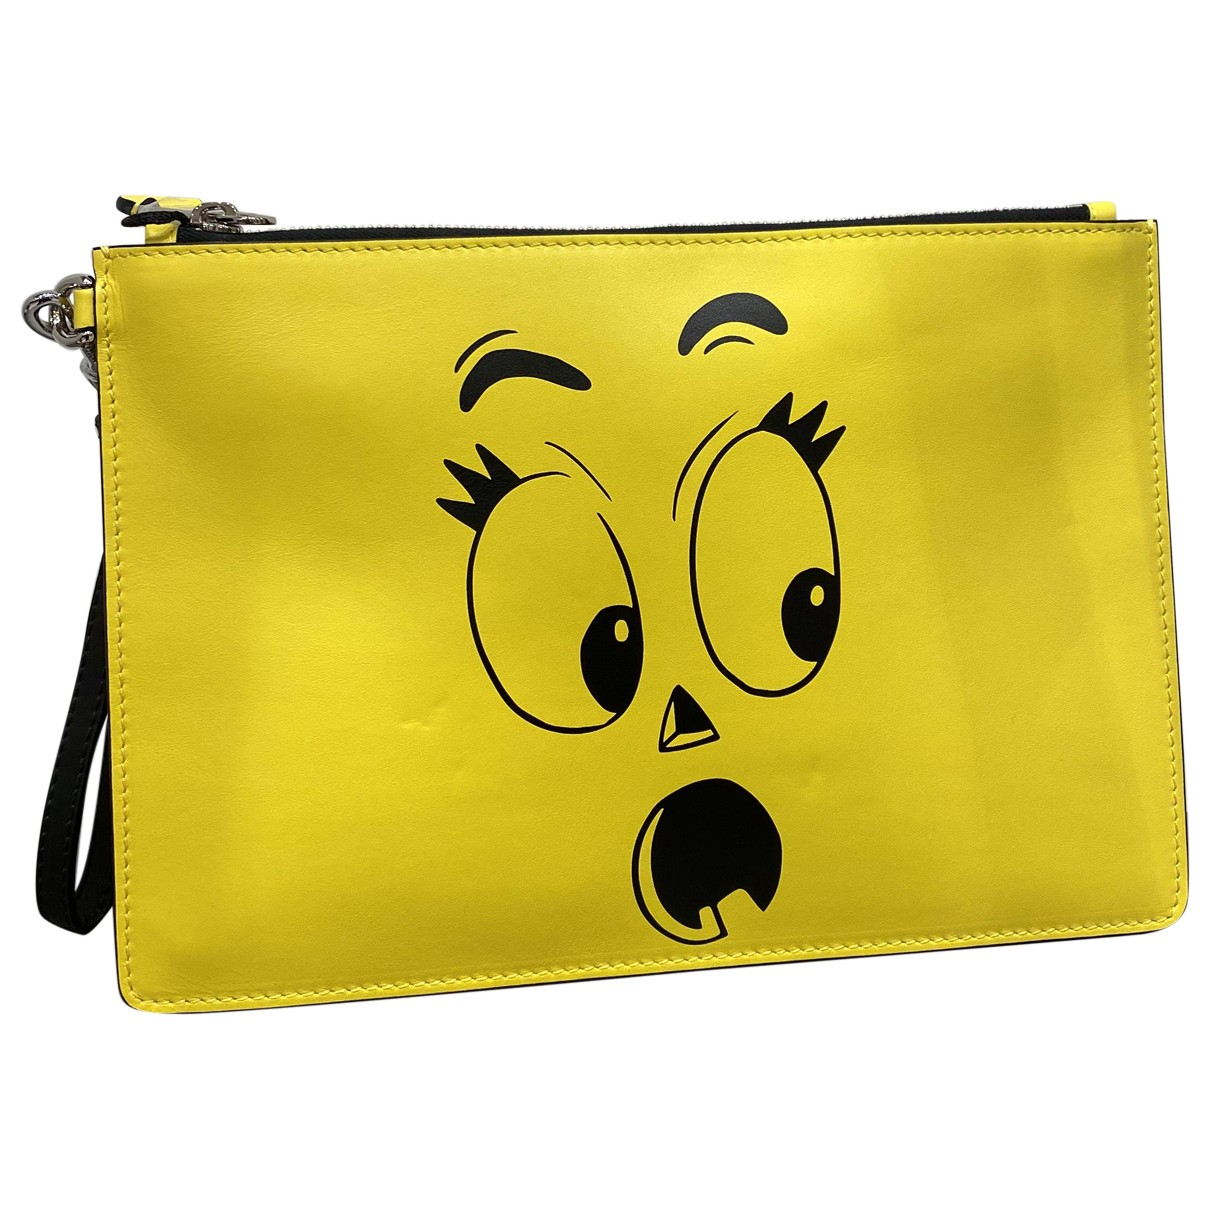 Moschino N Yellow Leather Clutch bag for Women N